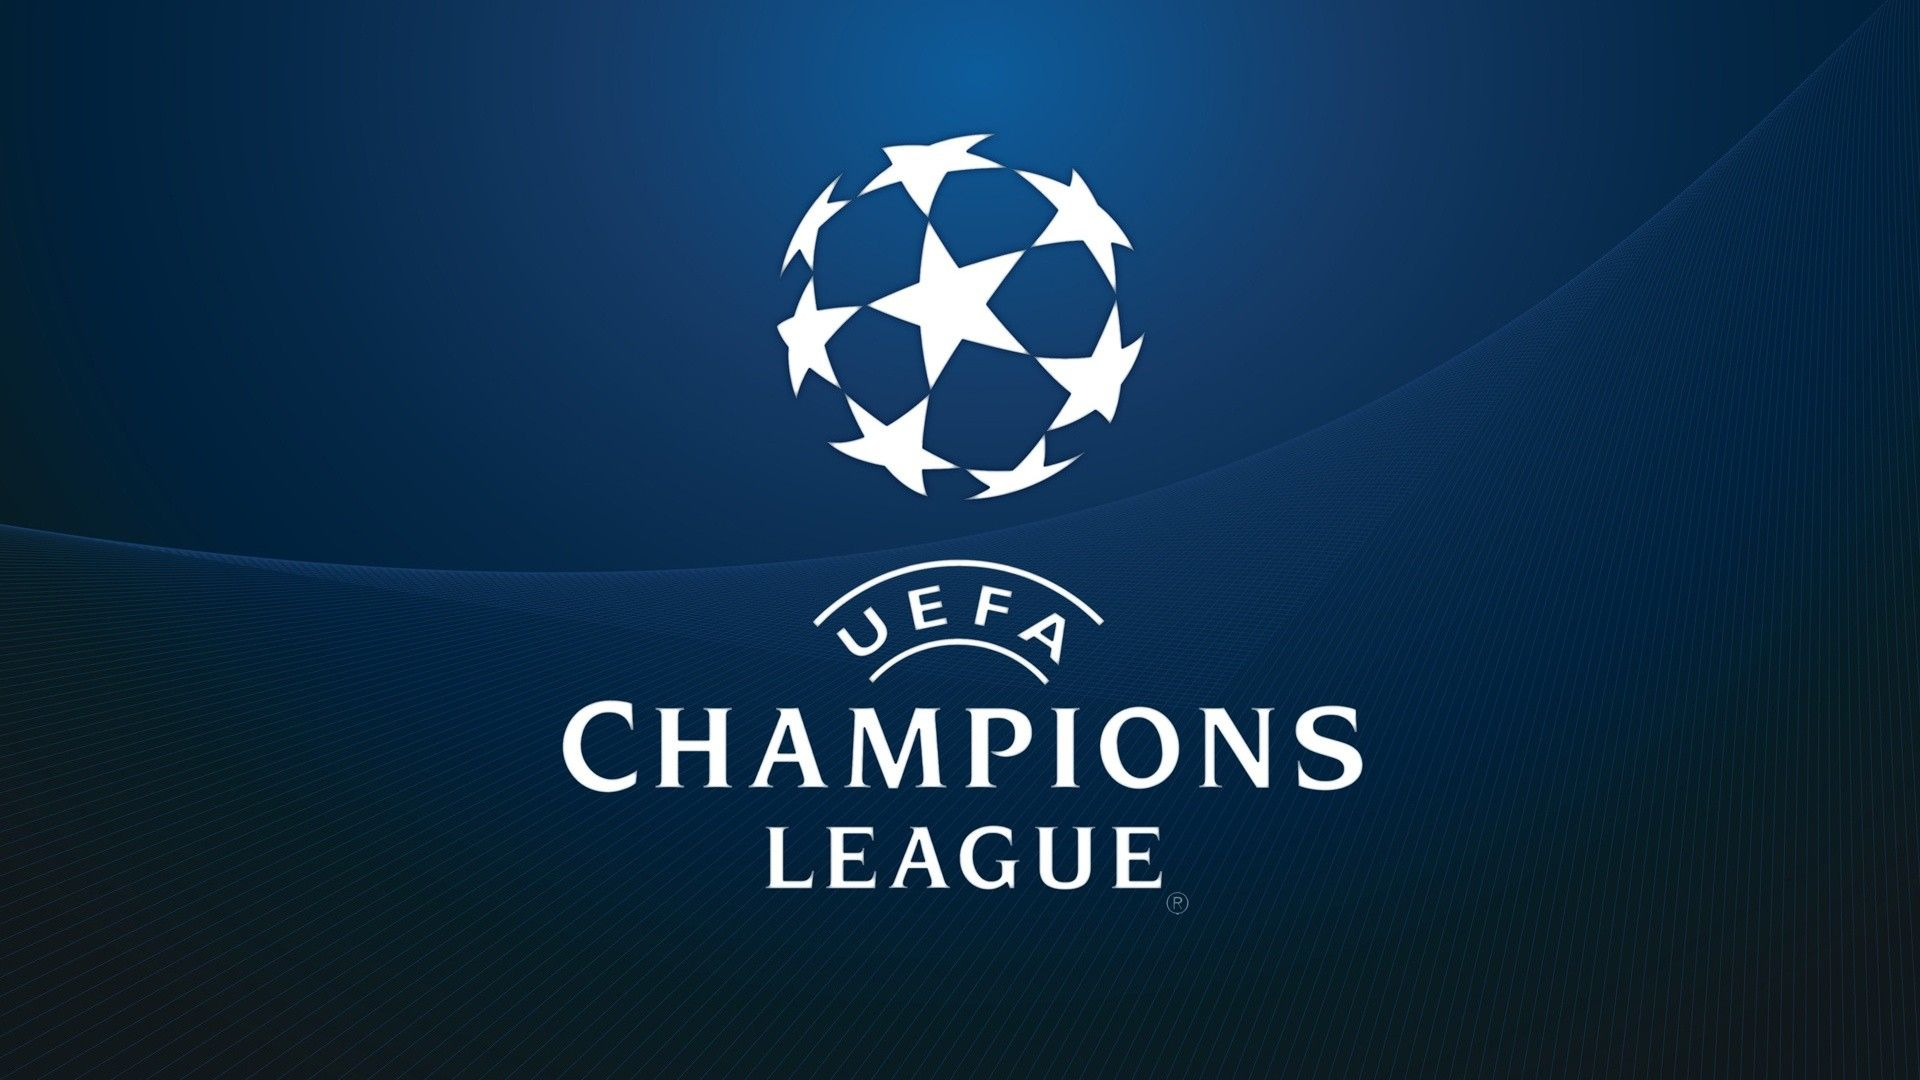 UEFA Champions League Logo HD Wallpaper